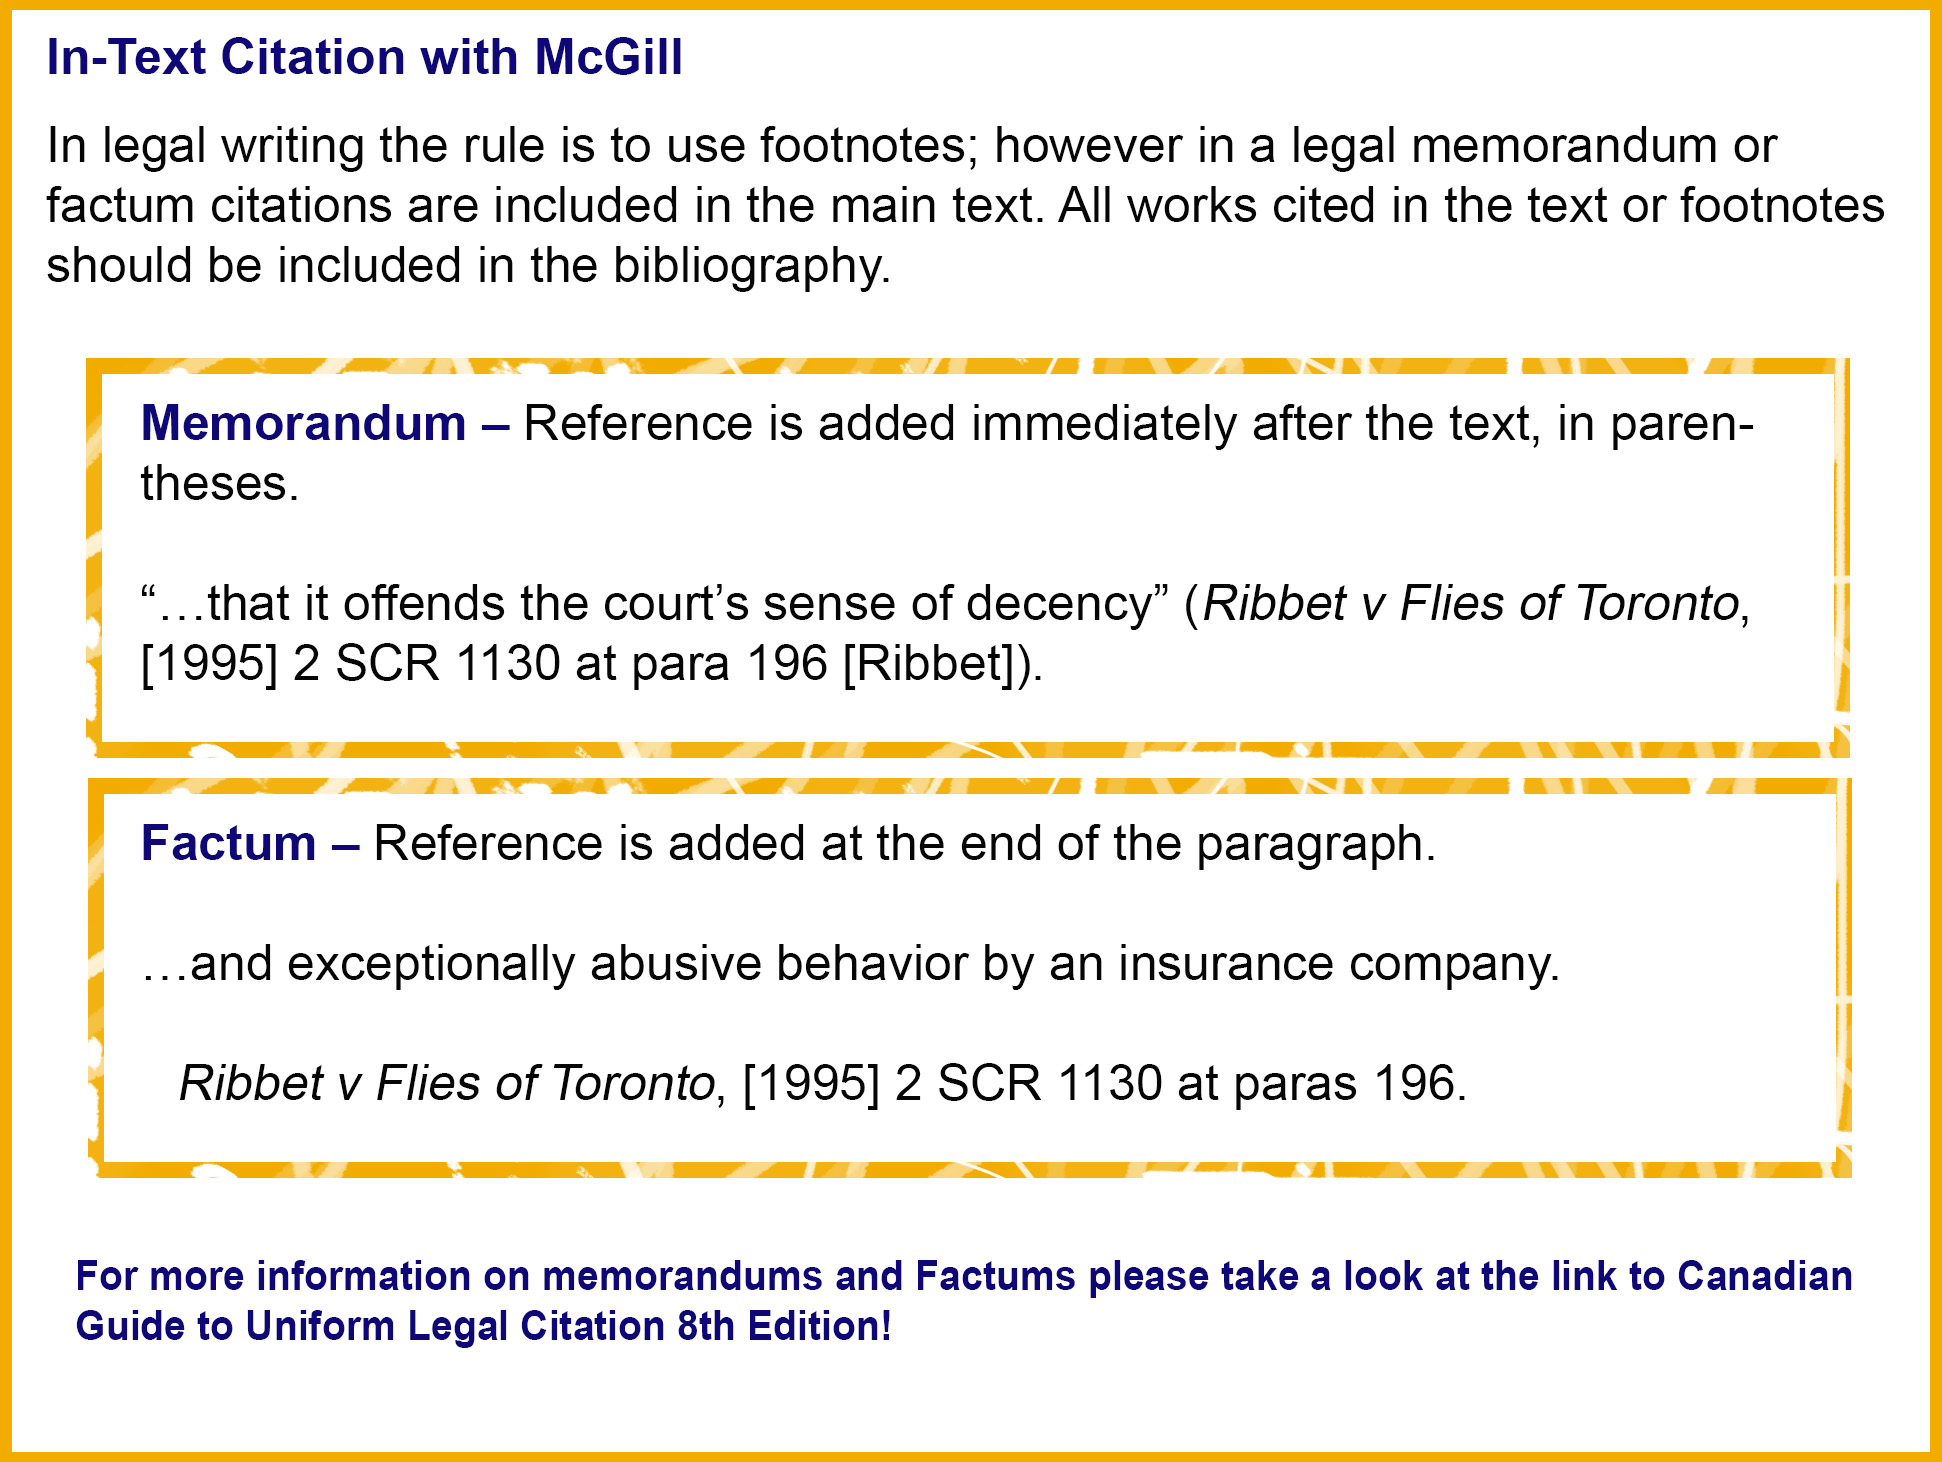 Mcgill 8th edition citation style guide libguides at dalhousie citation style guide ccuart